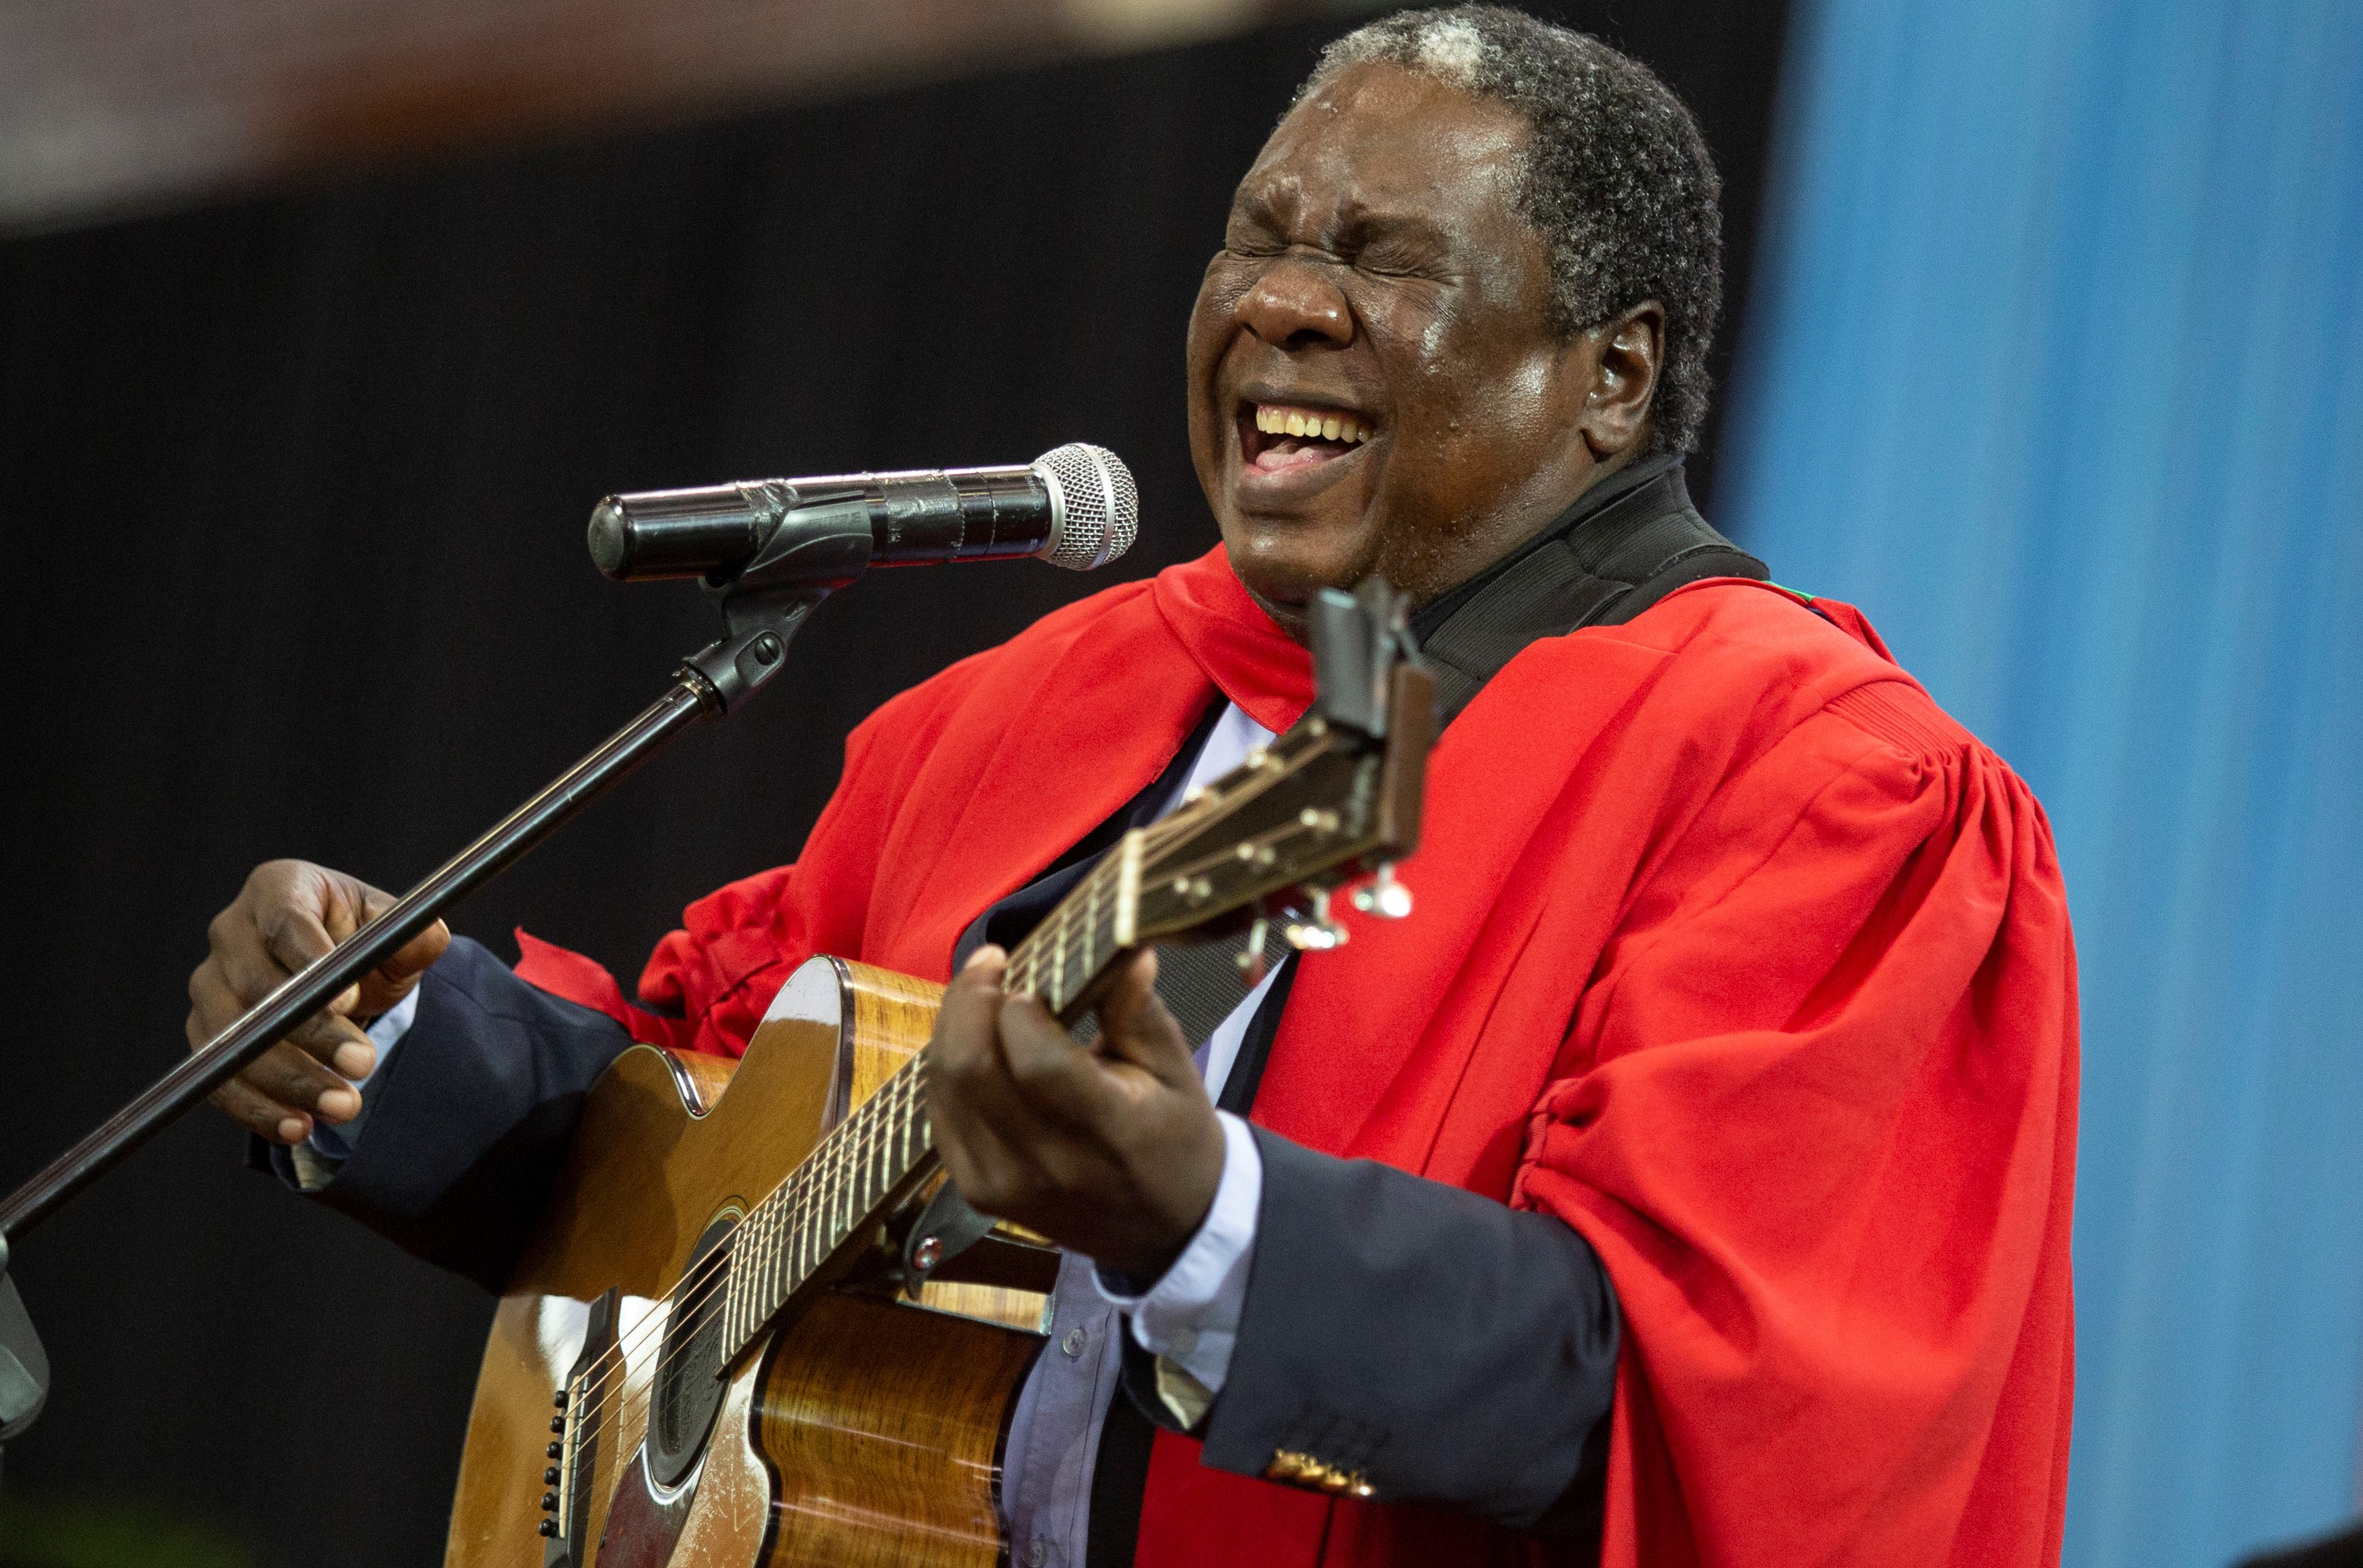 UKZN Honorary Doctorate for Renowned SA Jazz Musician